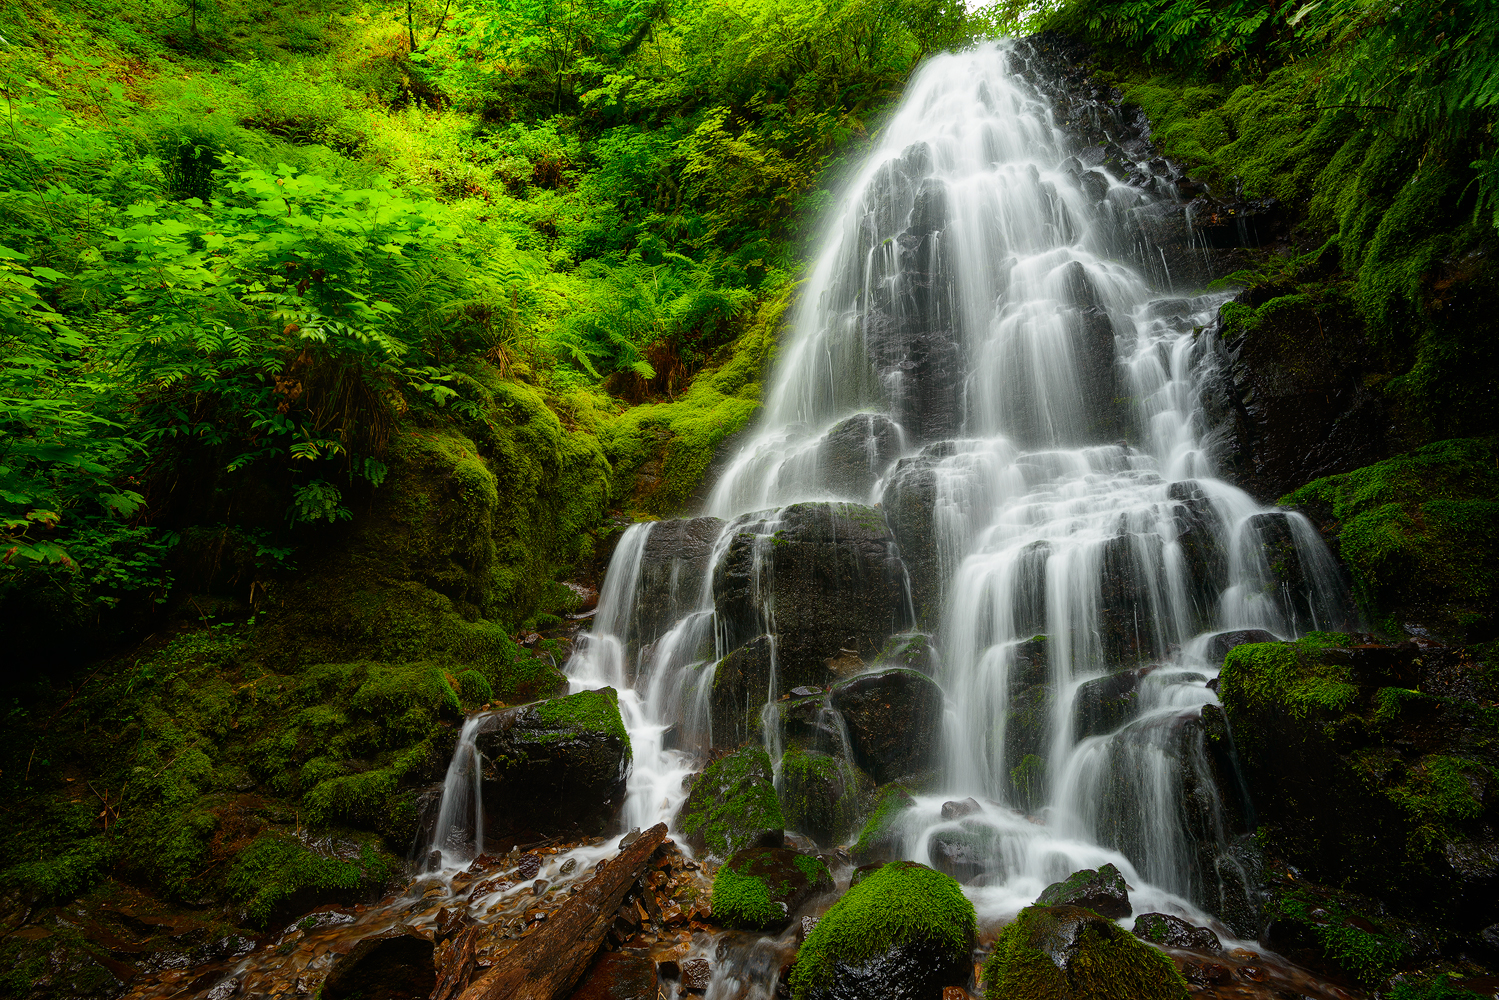 Tutorial: Learn How to Capture Beautiful Waterfall Photos